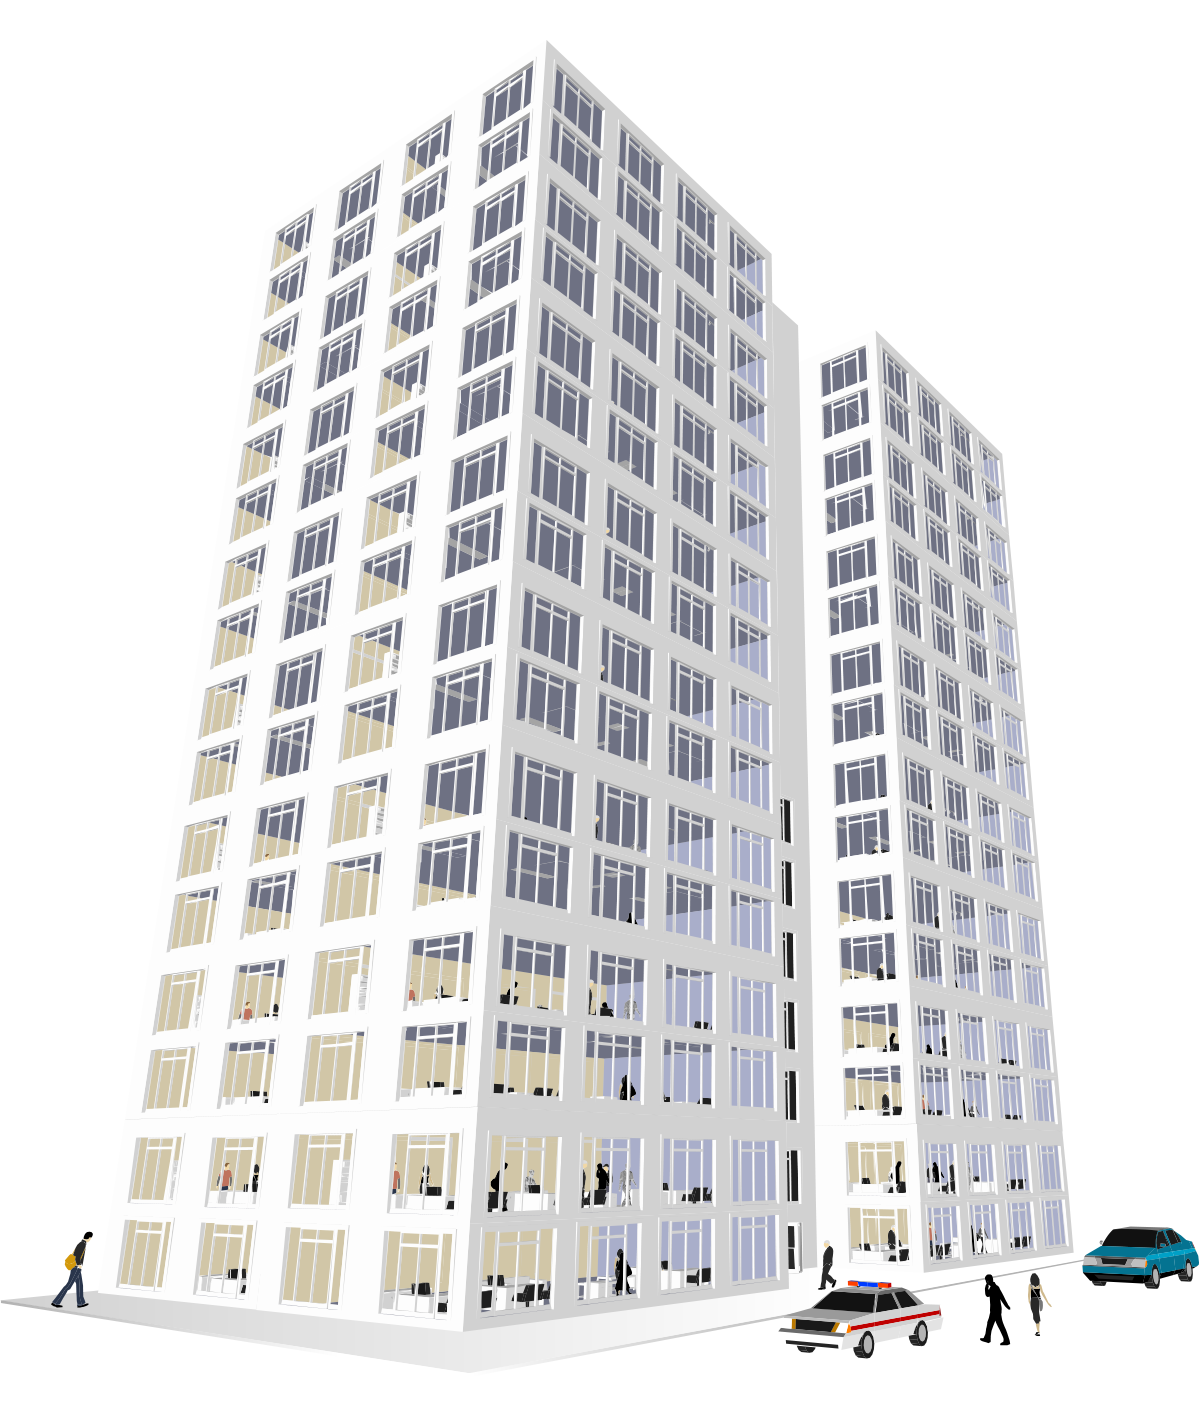 Office building clipart png clip art freeuse download Office Building Clip art - White skyscrapers street 1199*1418 ... clip art freeuse download